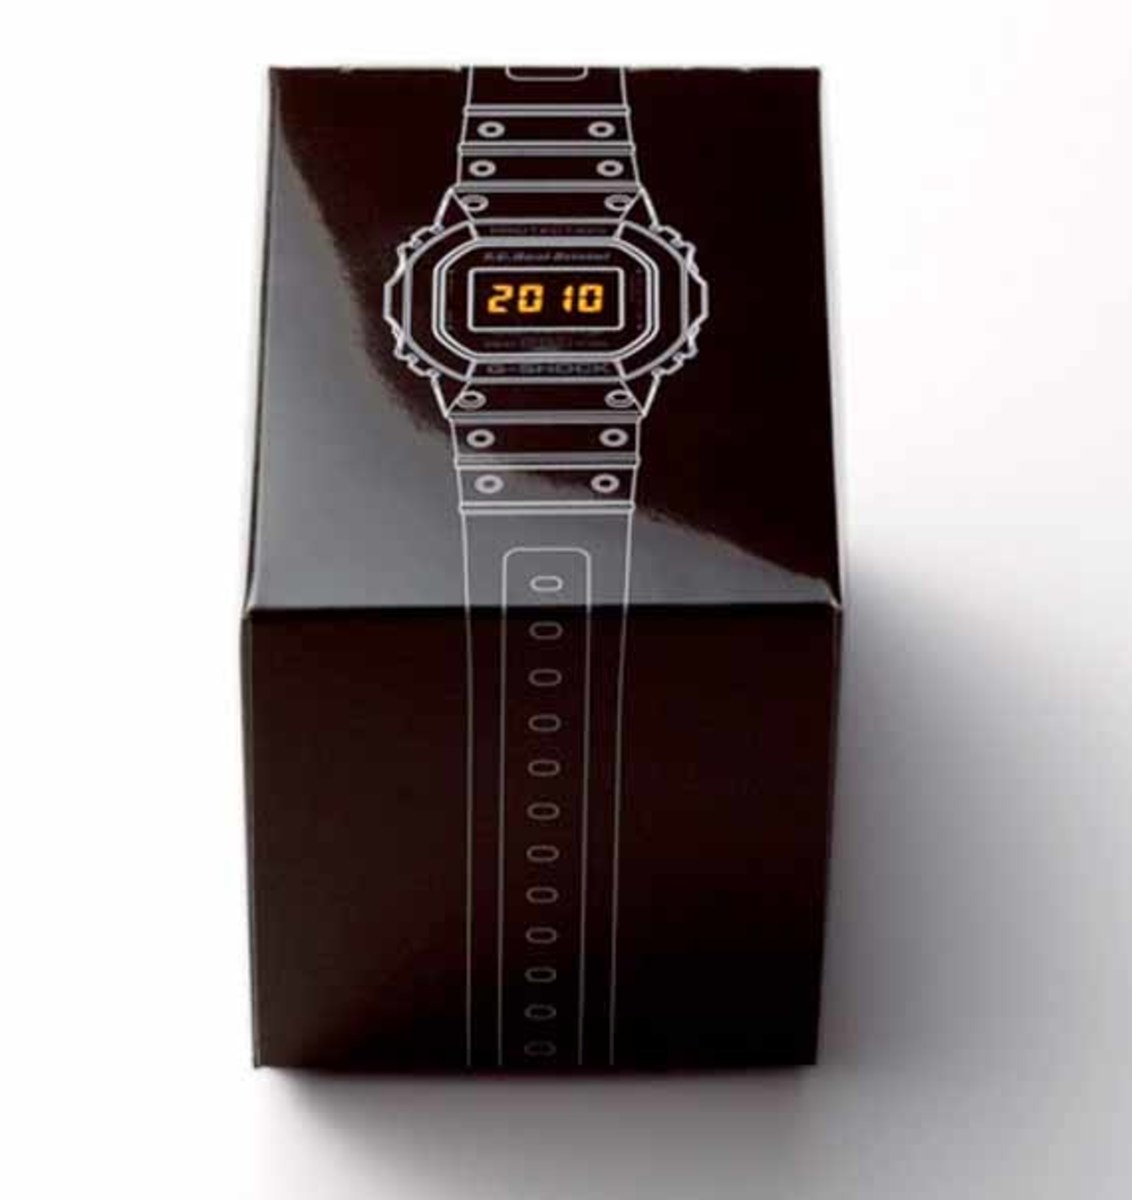 fcrb-casio-gshock-watch-3